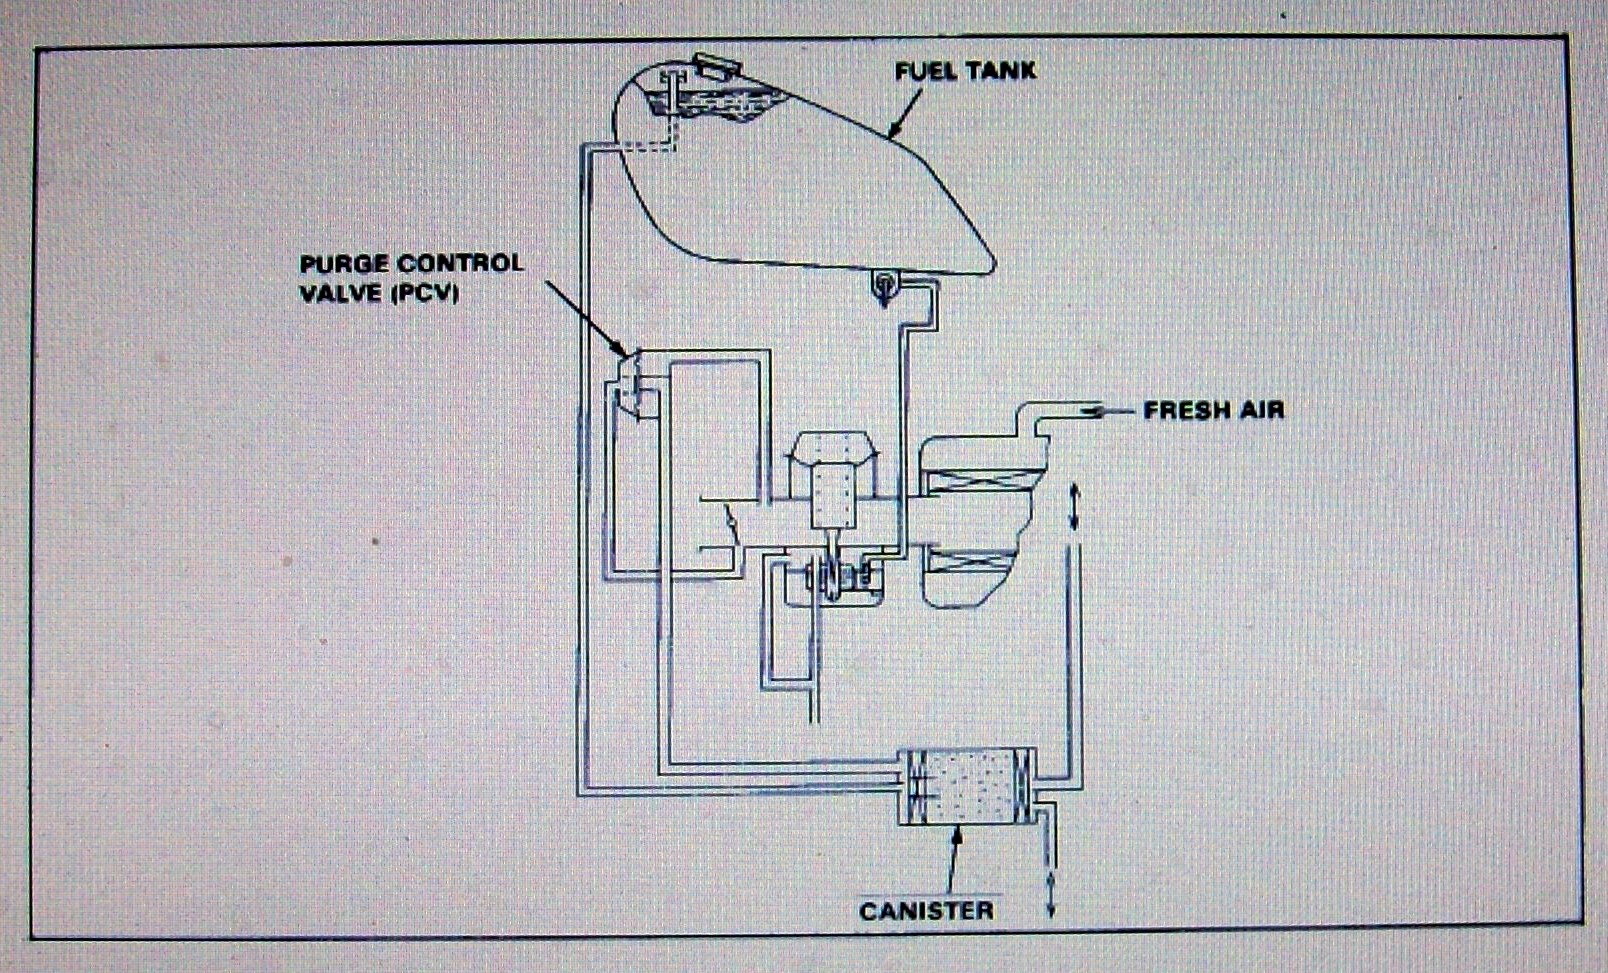 hight resolution of carb information years jetting and more 201 4577 jpg